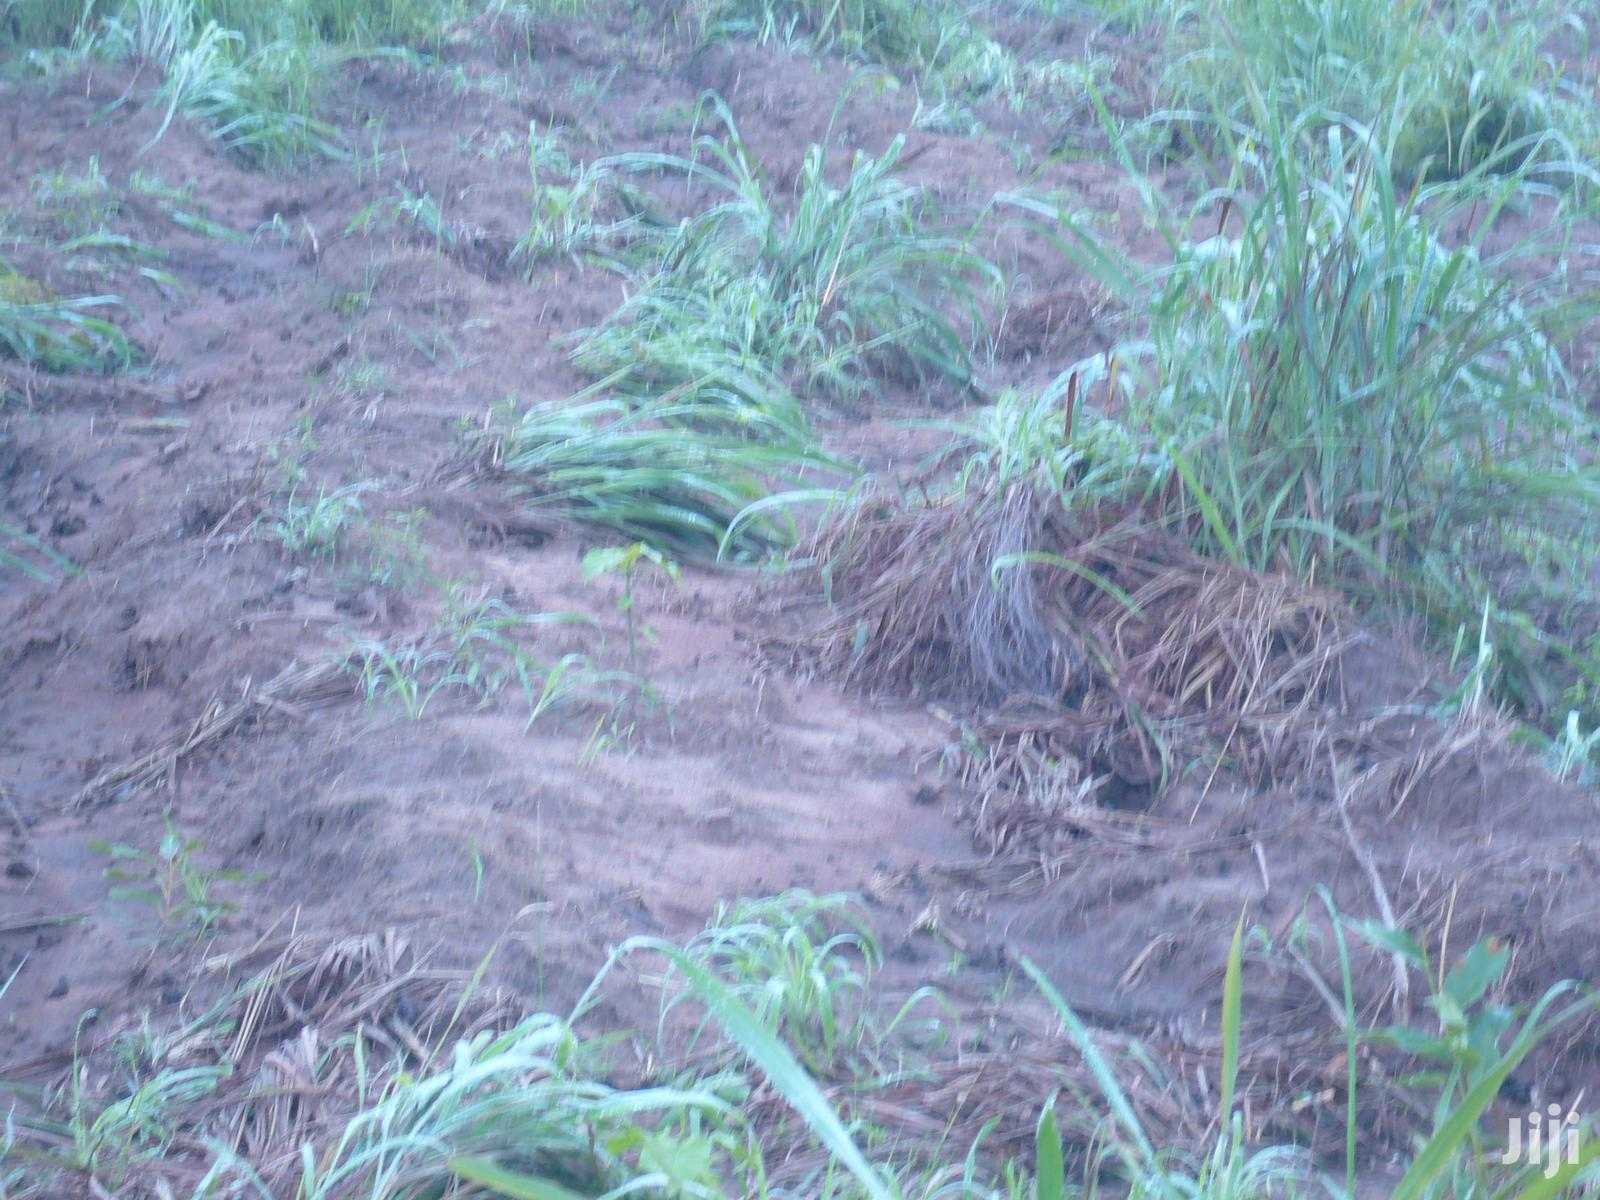 Agriculture Land For Lease In Bono East Region | Land & Plots for Rent for sale in Kintampo North Municipal, Brong Ahafo, Ghana